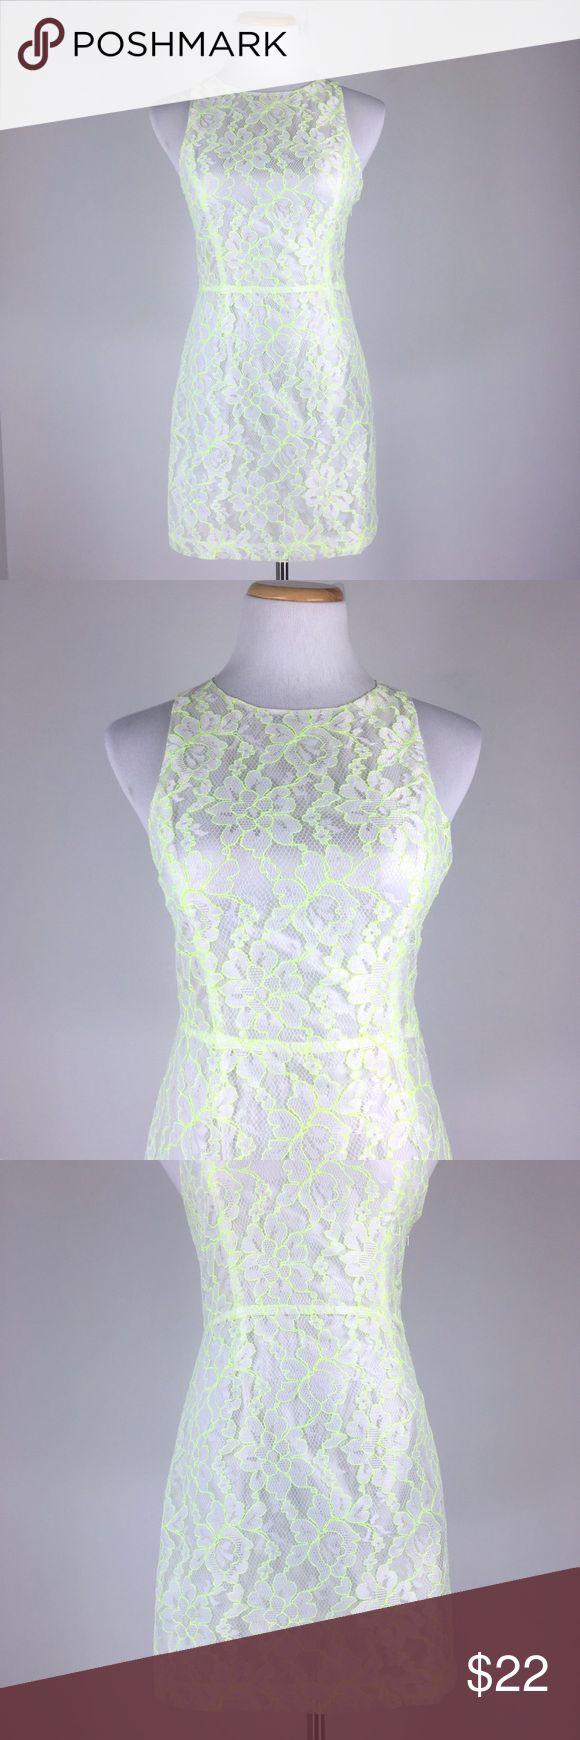 """Lush Size S Sleeveless Floral Lace Mini Dress This is a size S sleeveless crewneck floral lace mini dress by Lush Nordstrom. White & neon yellow color. Fully lined. Back zipper. Lightweight. Semi sheer. Open back design.  Pre-owned. Great shape and in excellent condition. Gently used with no flaws. No rip, no stain and no holes. Material: 100% Polyester Measurement: Pit to Pit: 15.5"""" Garment Length: 31.5"""" Waist: 26"""" Lush Dresses Mini"""